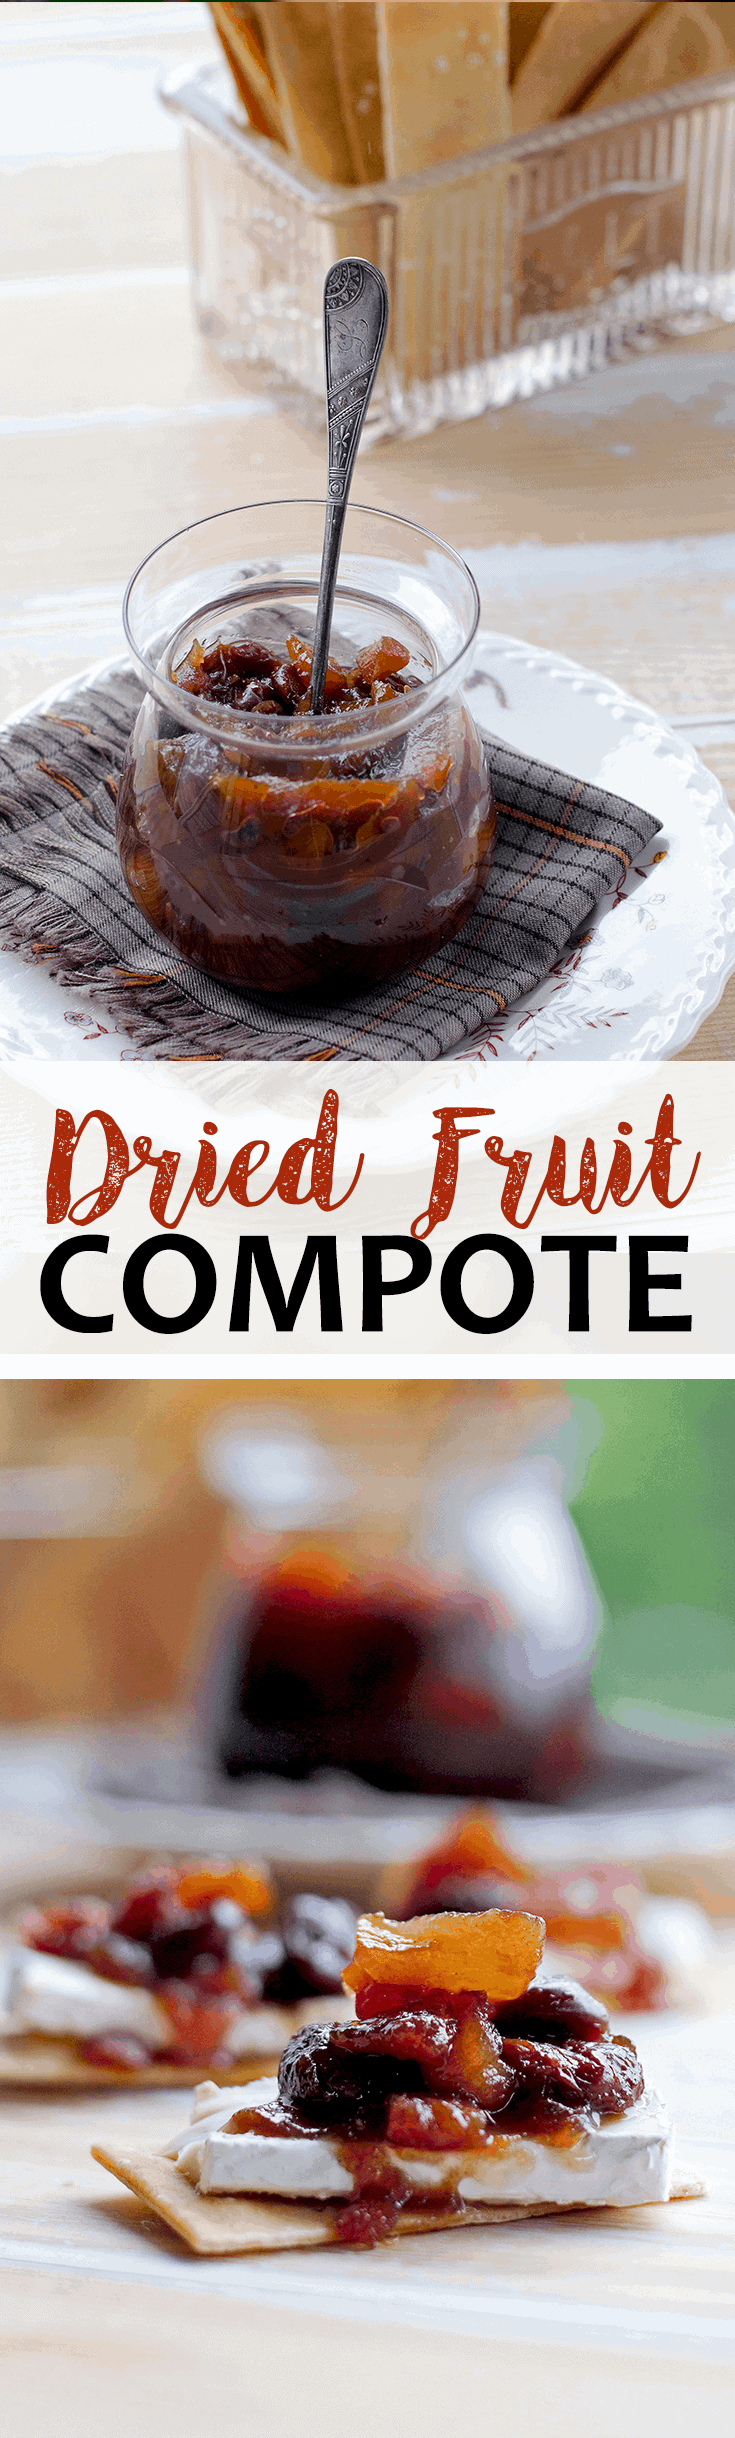 Dried Fruit Compote - Dried Fruit Compote